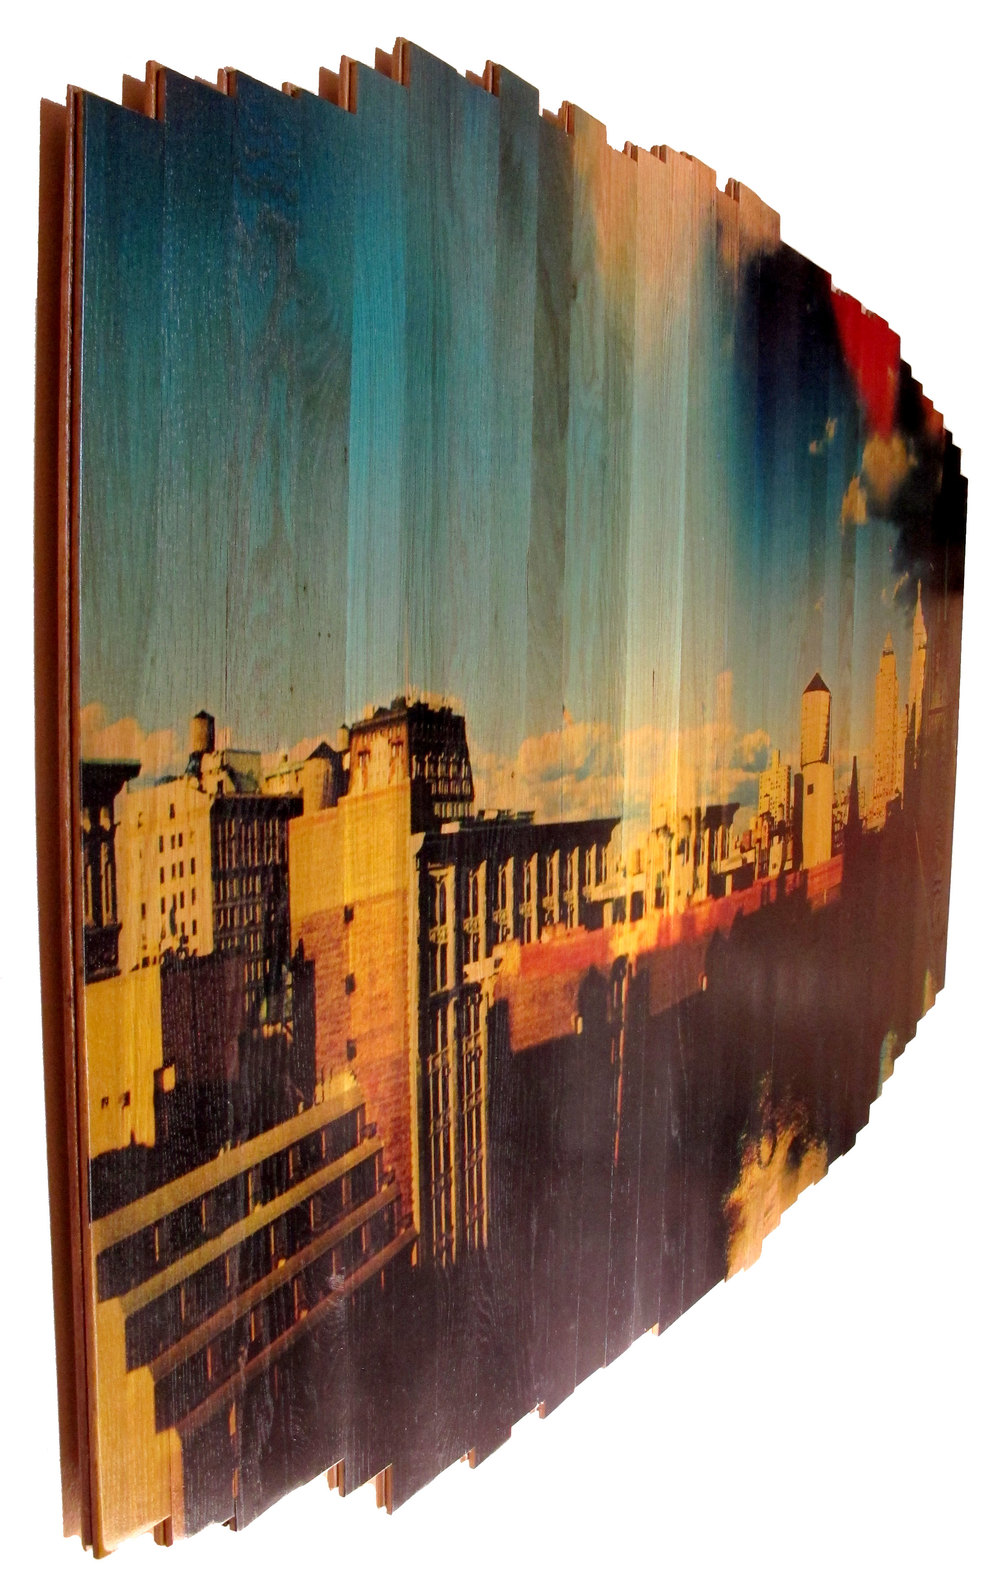 Water Tower - NY,  2016 c print on reclaimed wood floor 50 x 72 x 1.5 in / 127 x 183 x 4 cm  Sold